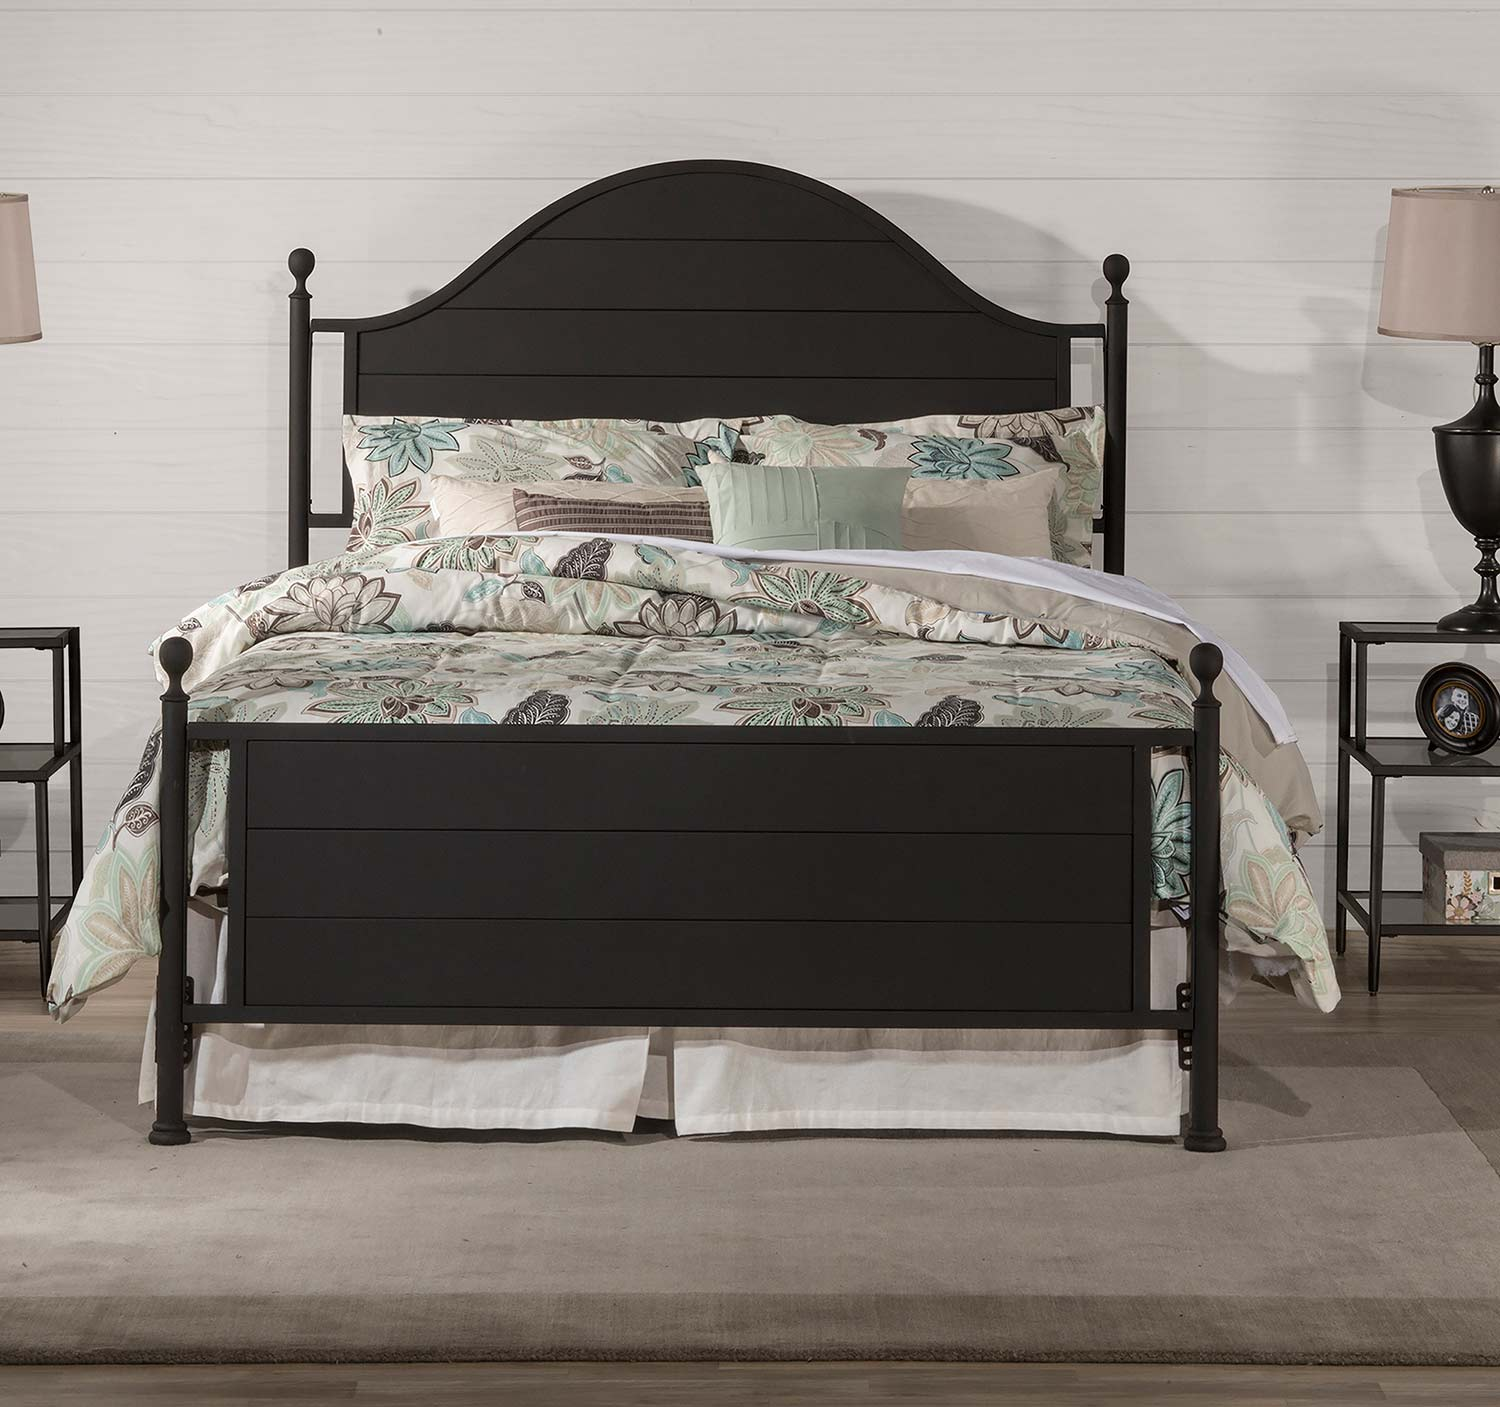 Hillsdale Cumberland Bed - Textured Black